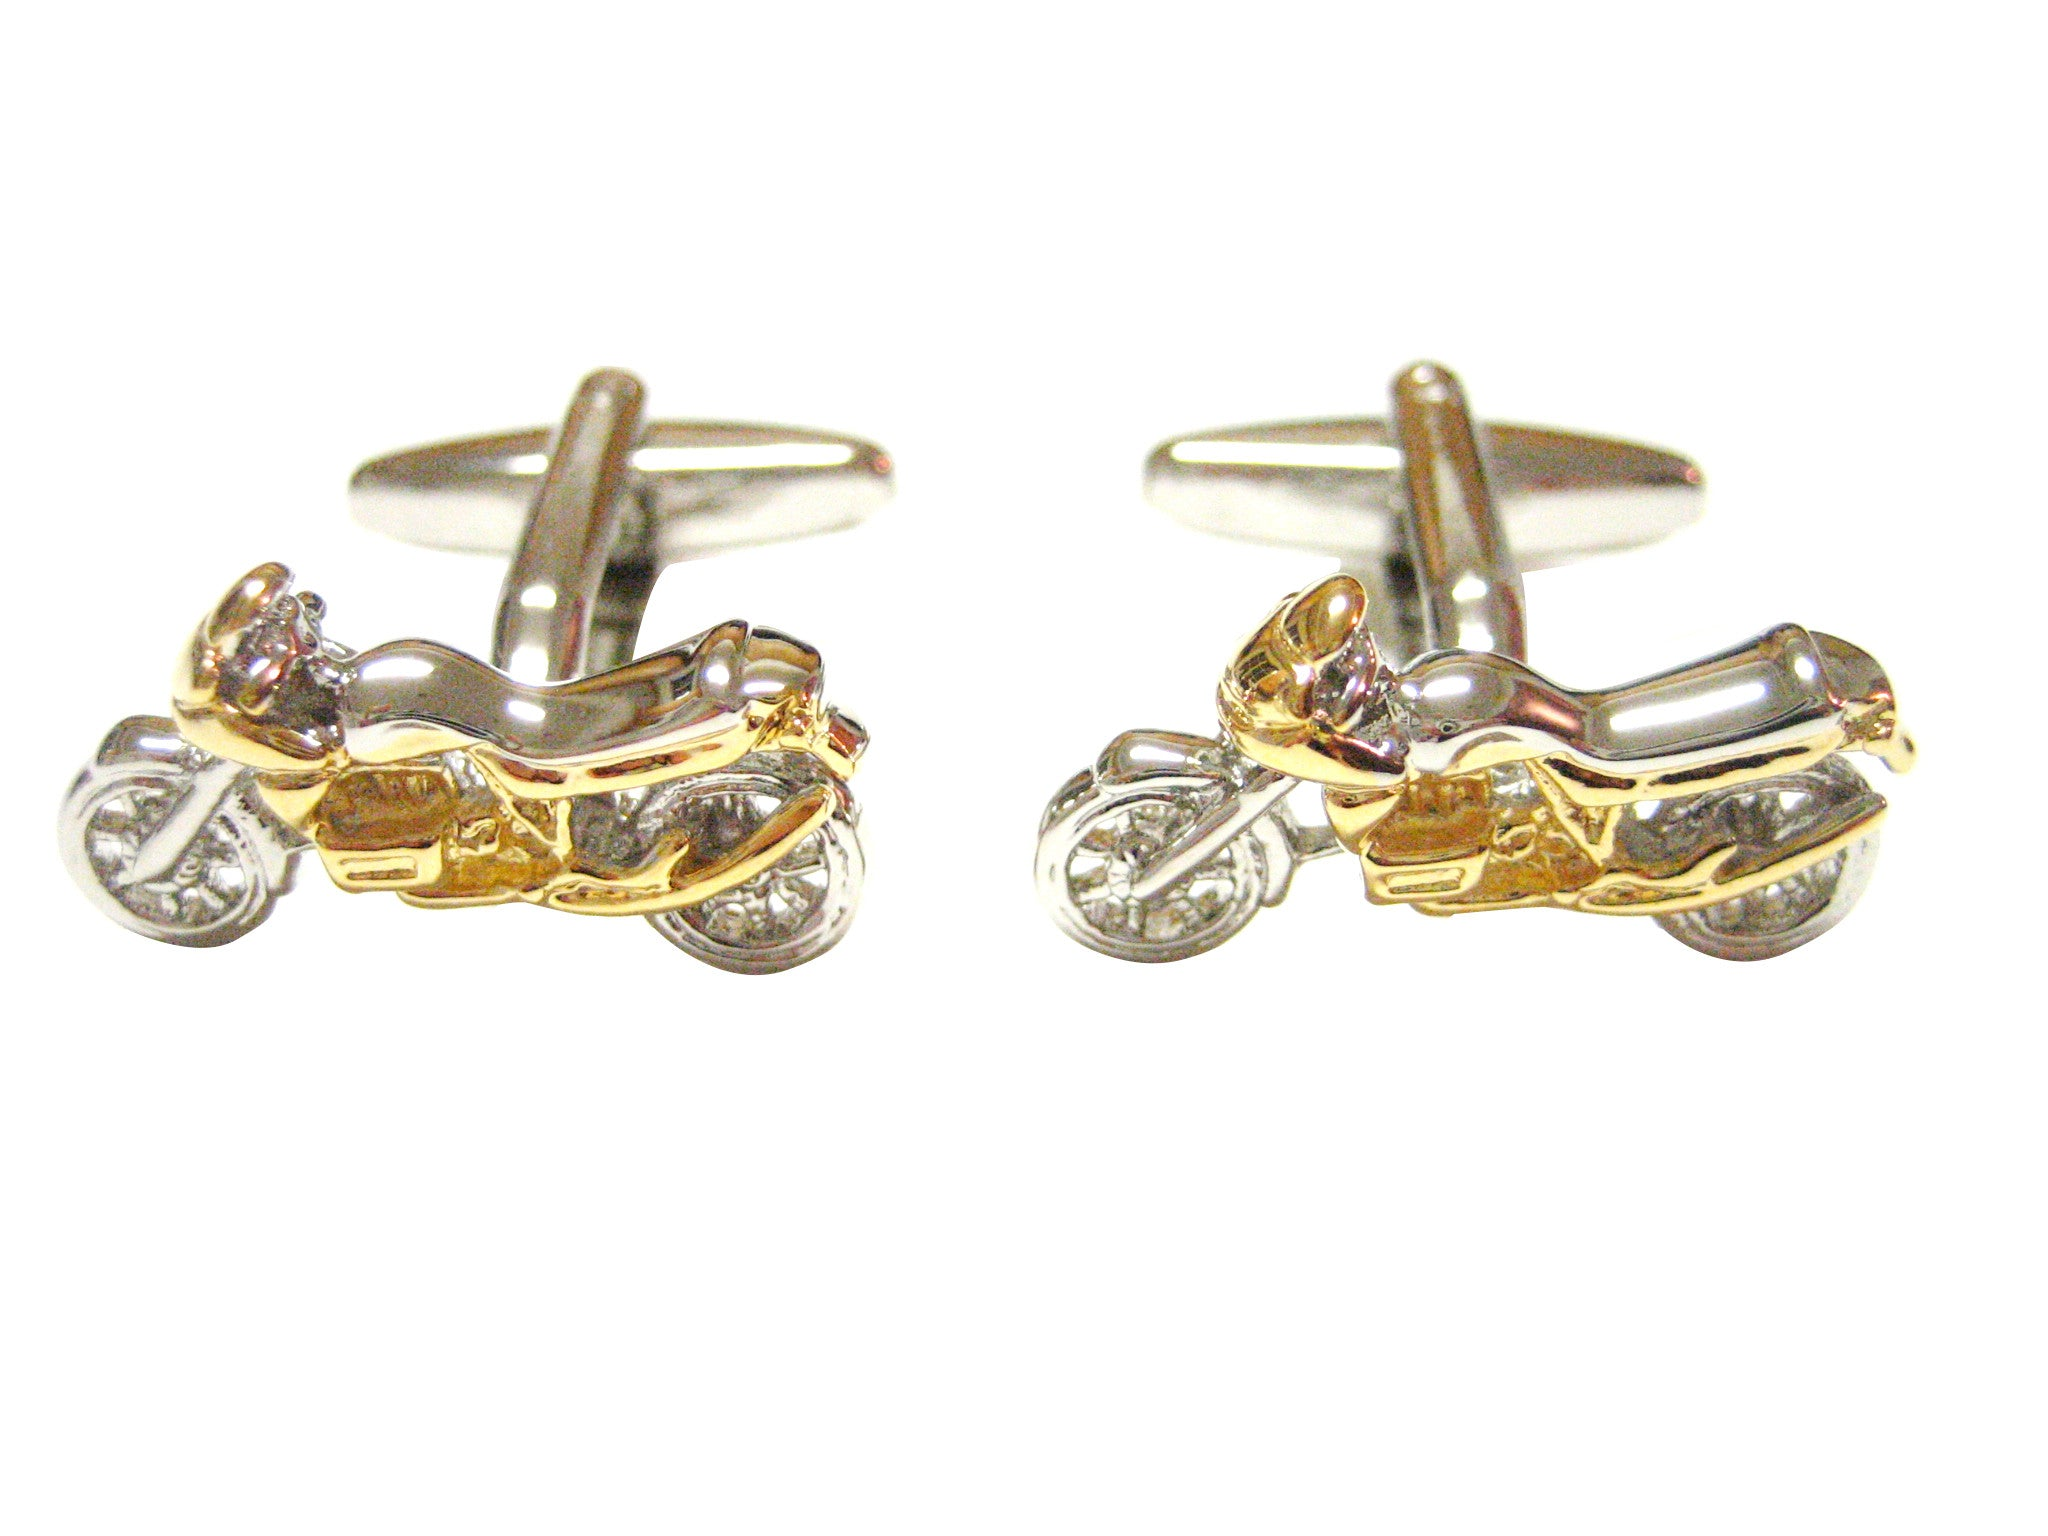 Gold and Silver Toned Dirt Bike Cufflinks